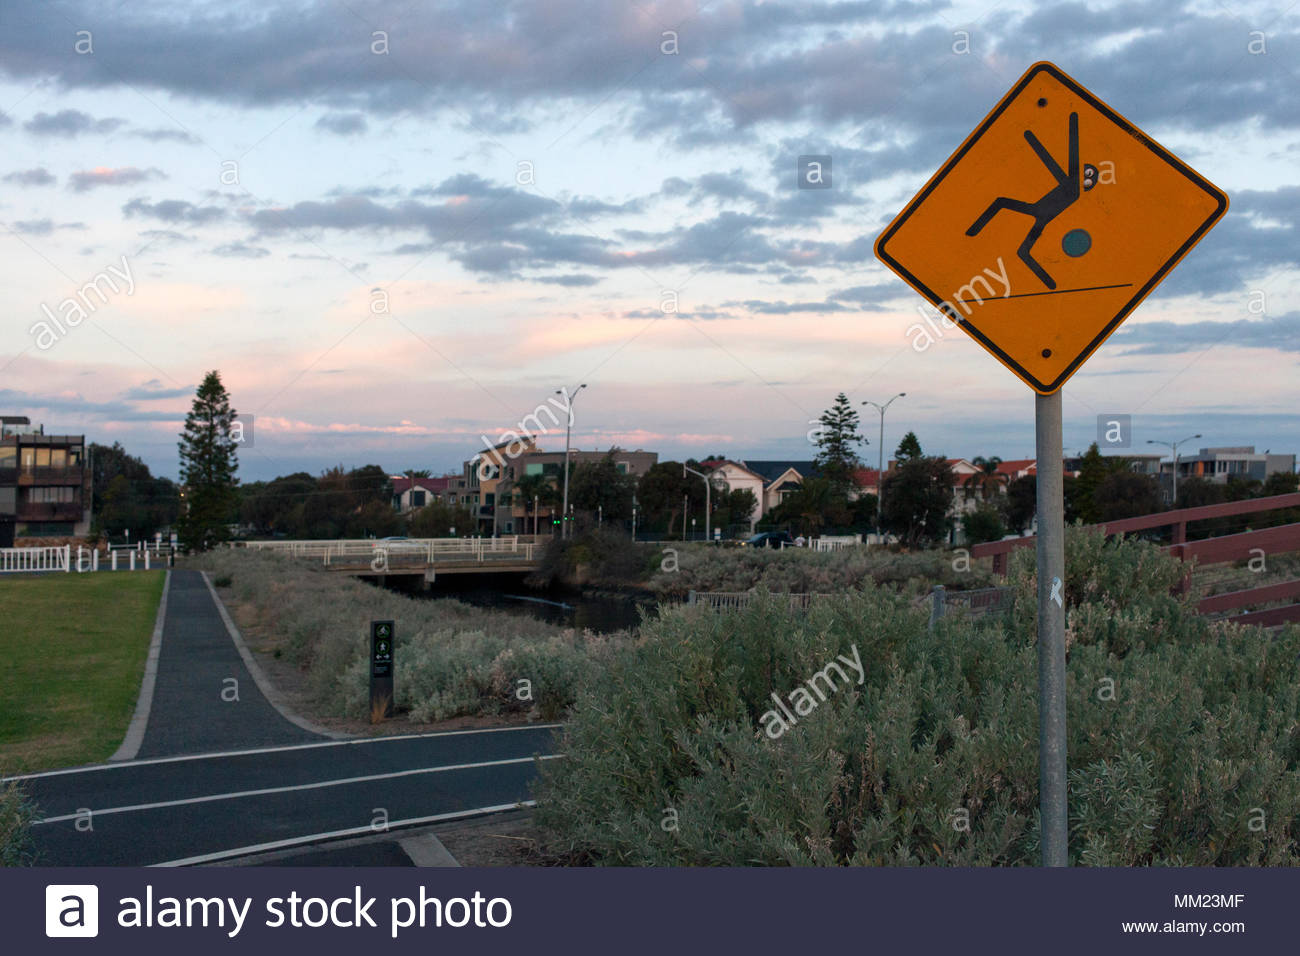 Vandalized sign - a 'caution slippery' sign now advertising a place for 'high jump'  -  in Elwood, Melbourne, Victoria on the Bay bike Trail - Stock Image